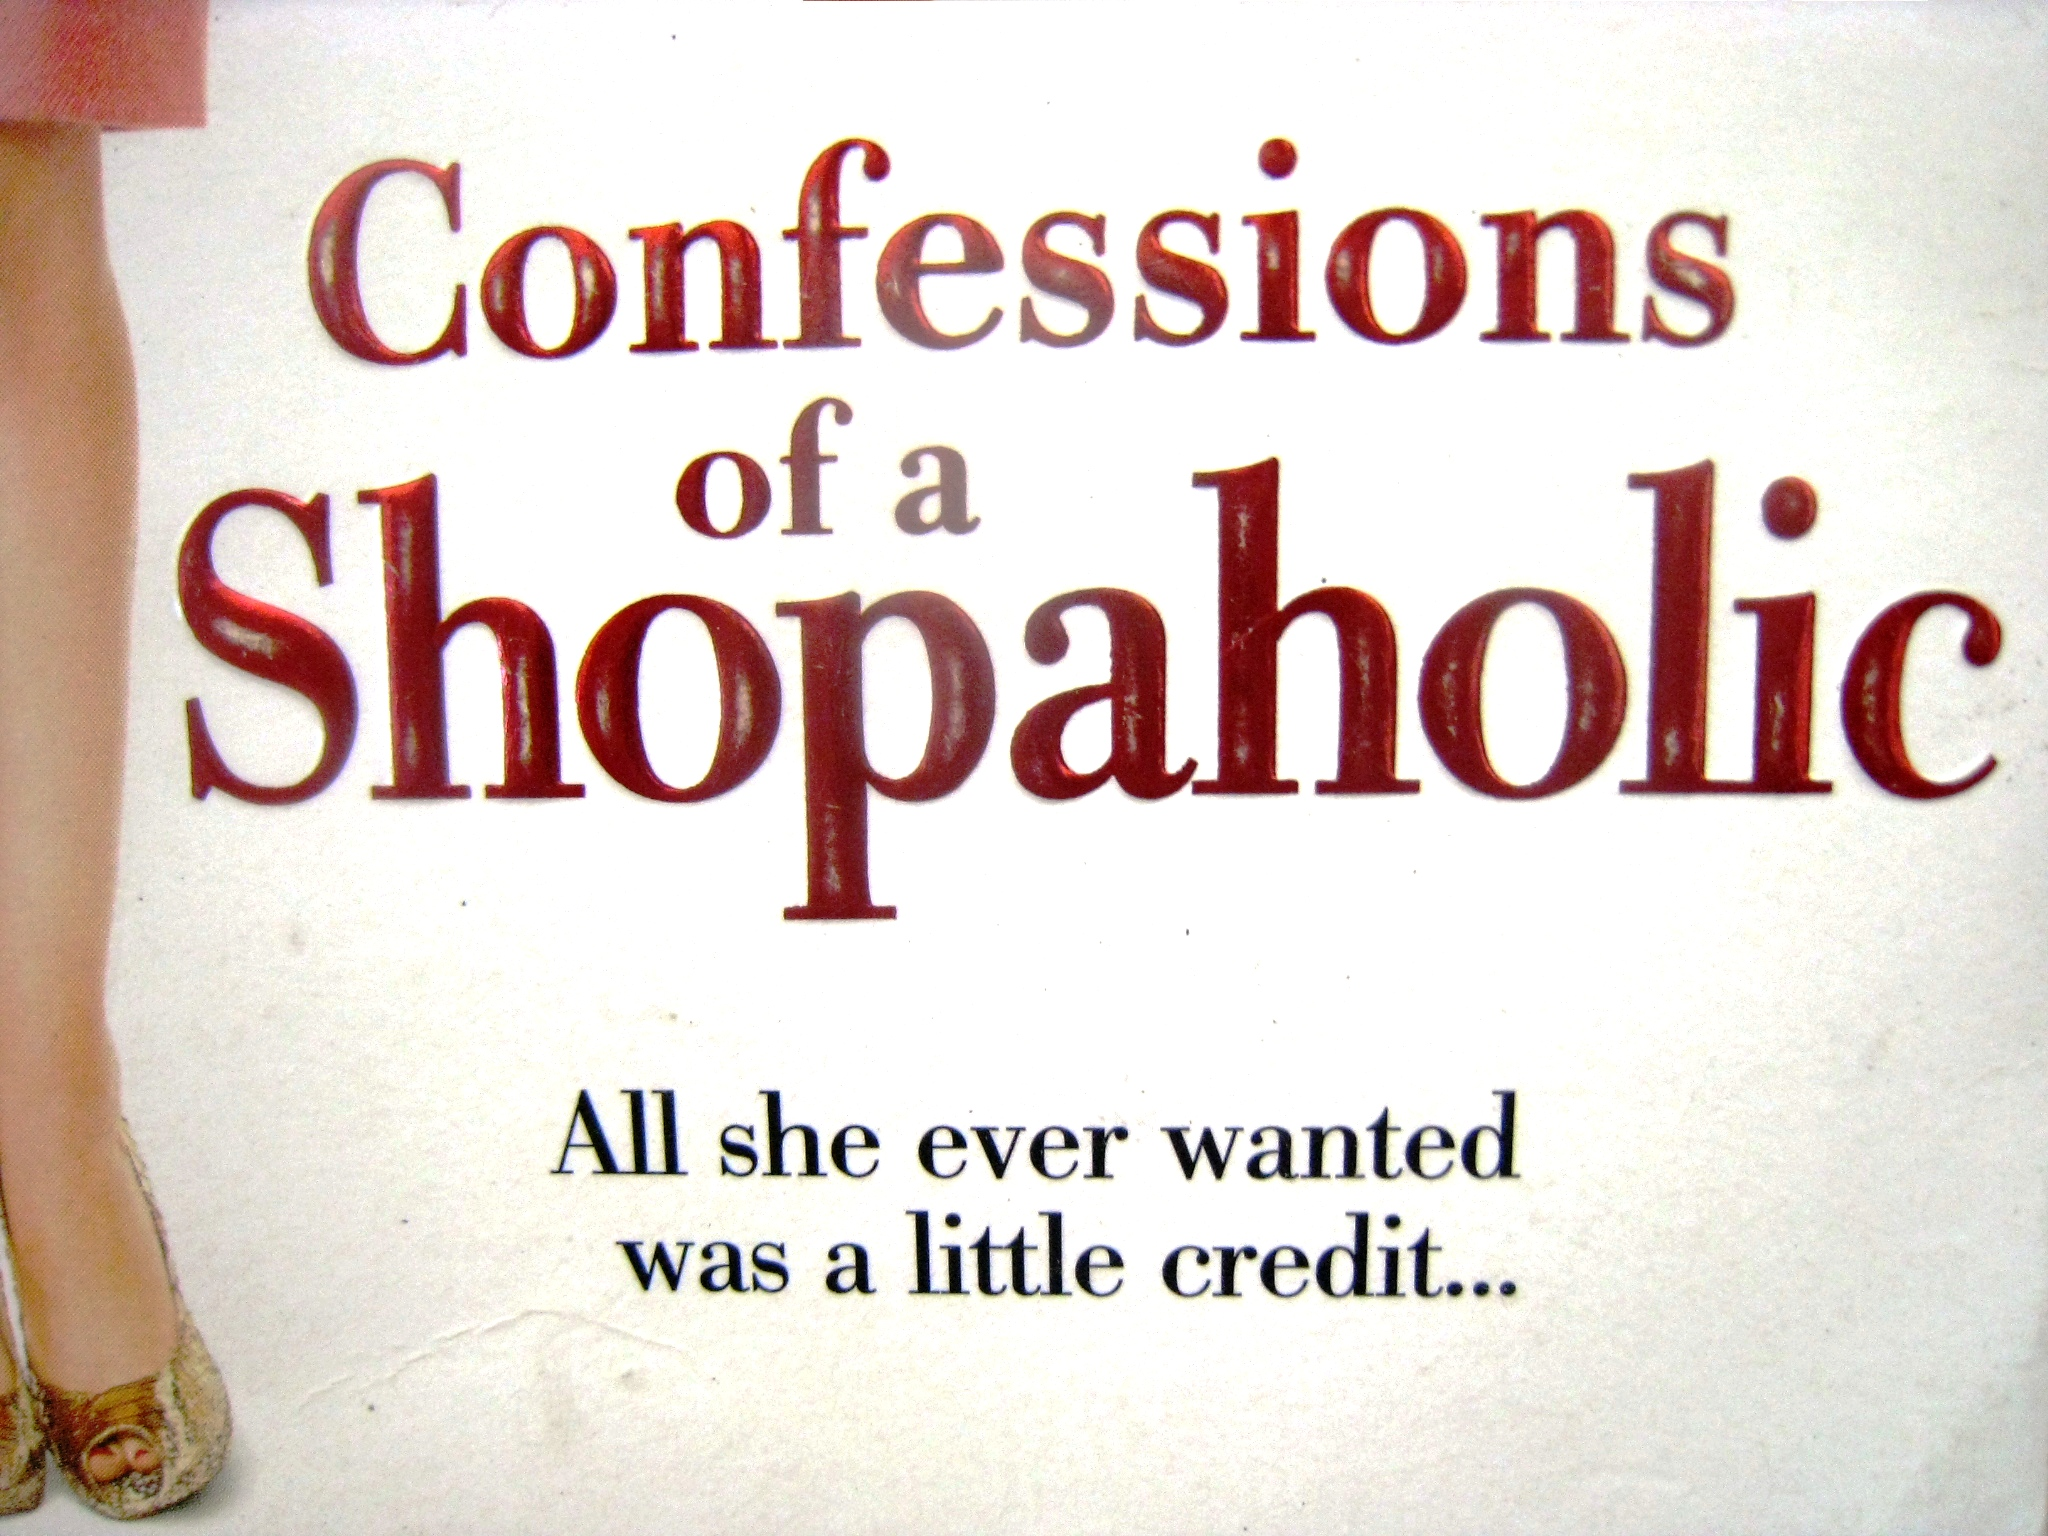 shopaholic addiction essay The true psychological source of a person's compulsive spending tendencies is difficult to pinpoint the behavior itself is not a diagnosable mental health condition, but it has been linked to many other psychological conditions, from low self-esteem to addictionsome researchers identify compulsive buying as an obsessive-compulsive tendency, and.